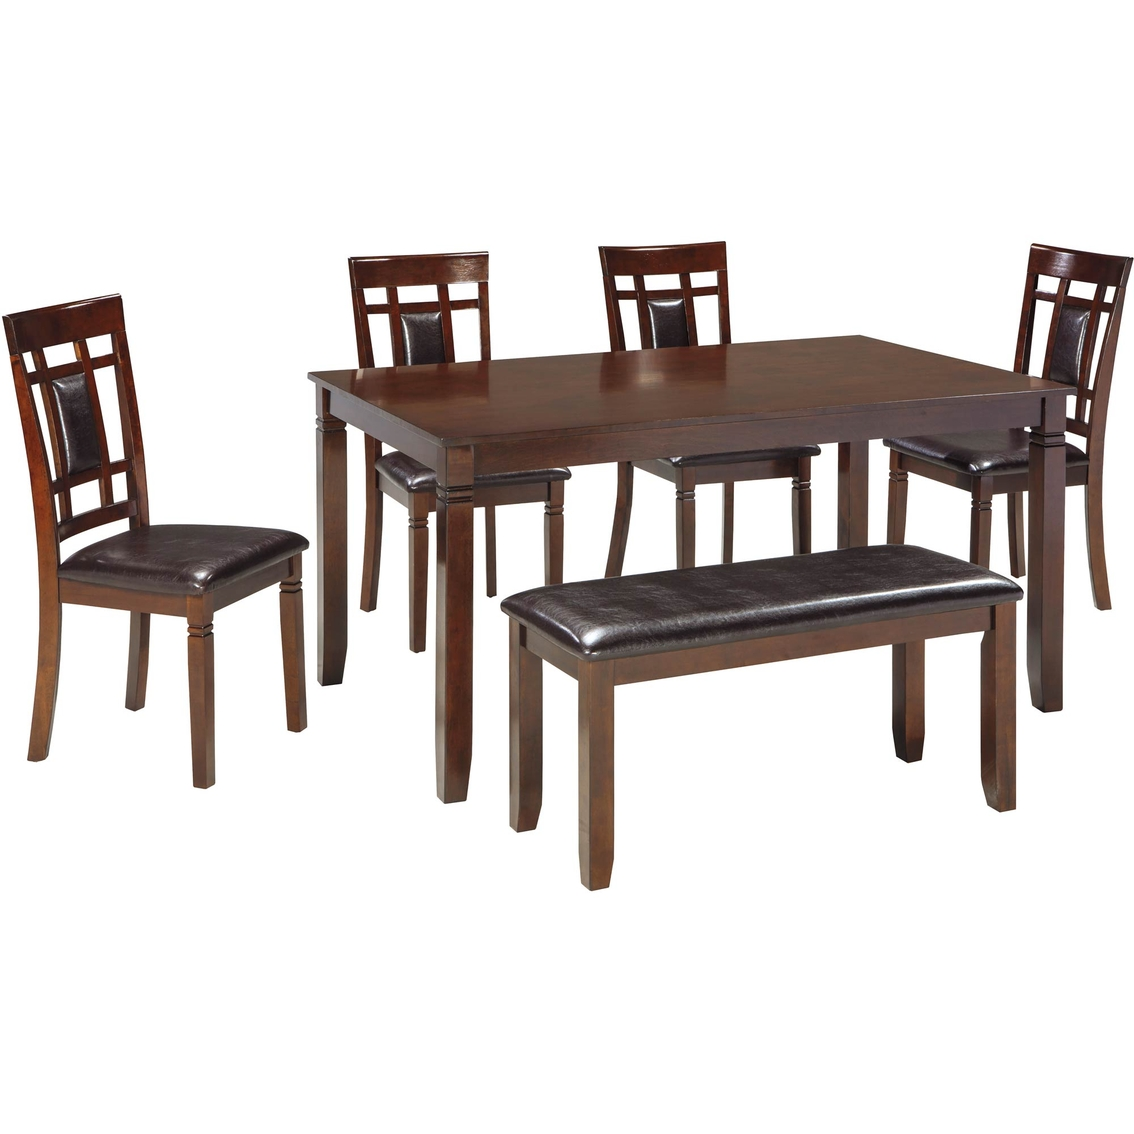 Signature Design By Ashley Bennox Dining Room Table Set  : 82666531453 from www.shopmyexchange.com size 1134 x 1134 jpeg 280kB